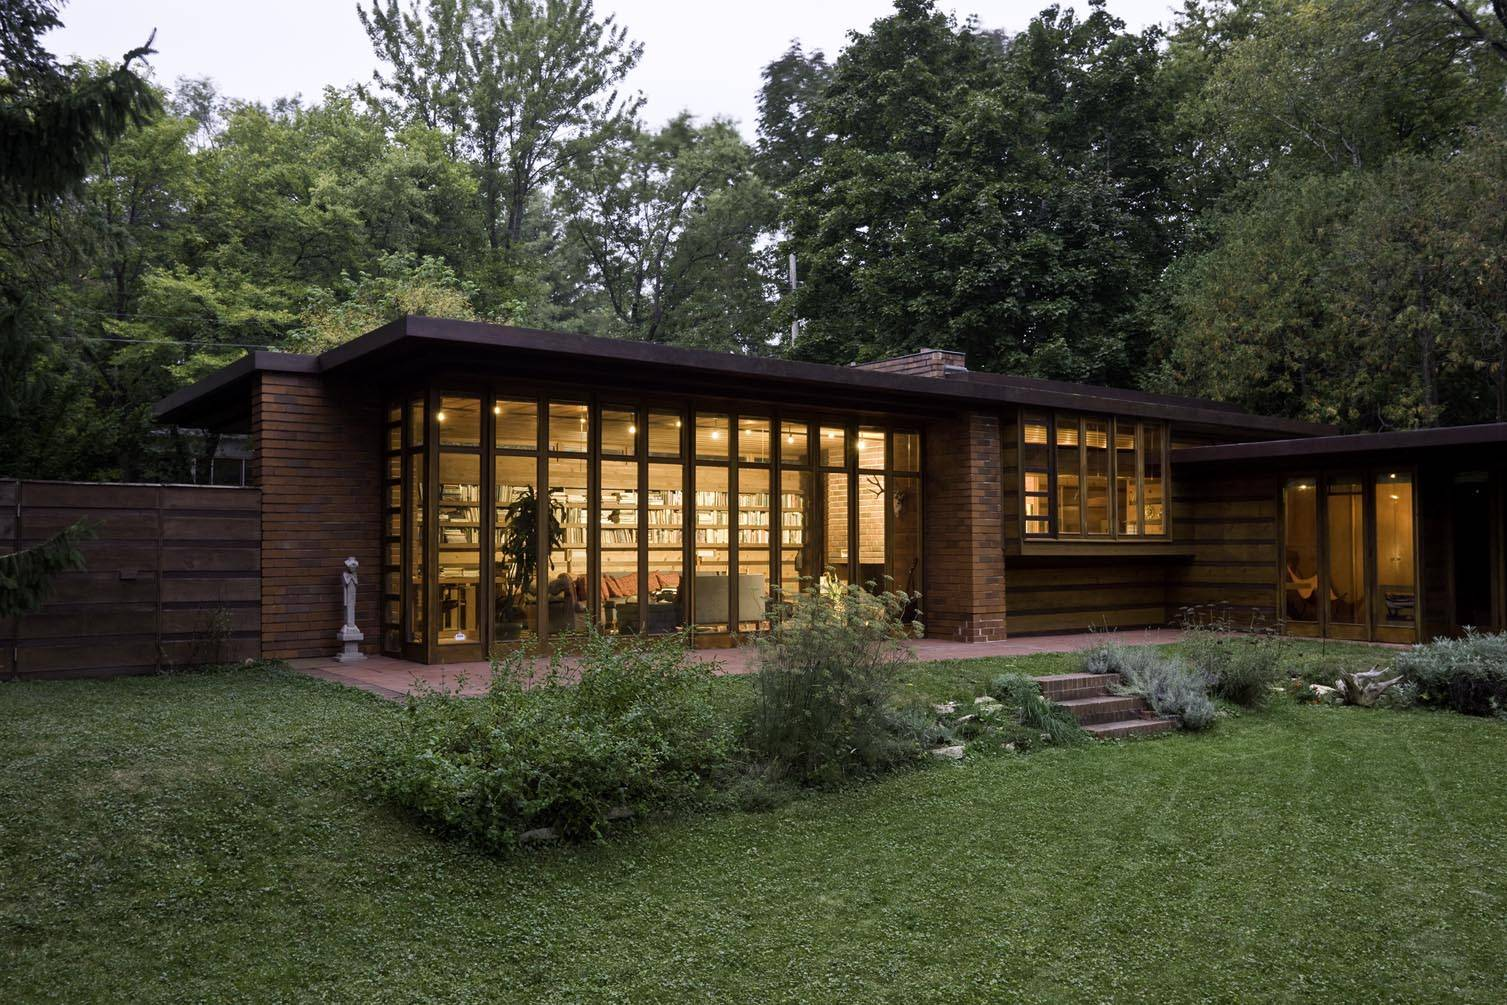 Frank Lloyd Wright's Usonian homes: the original low-cost, co-op housing